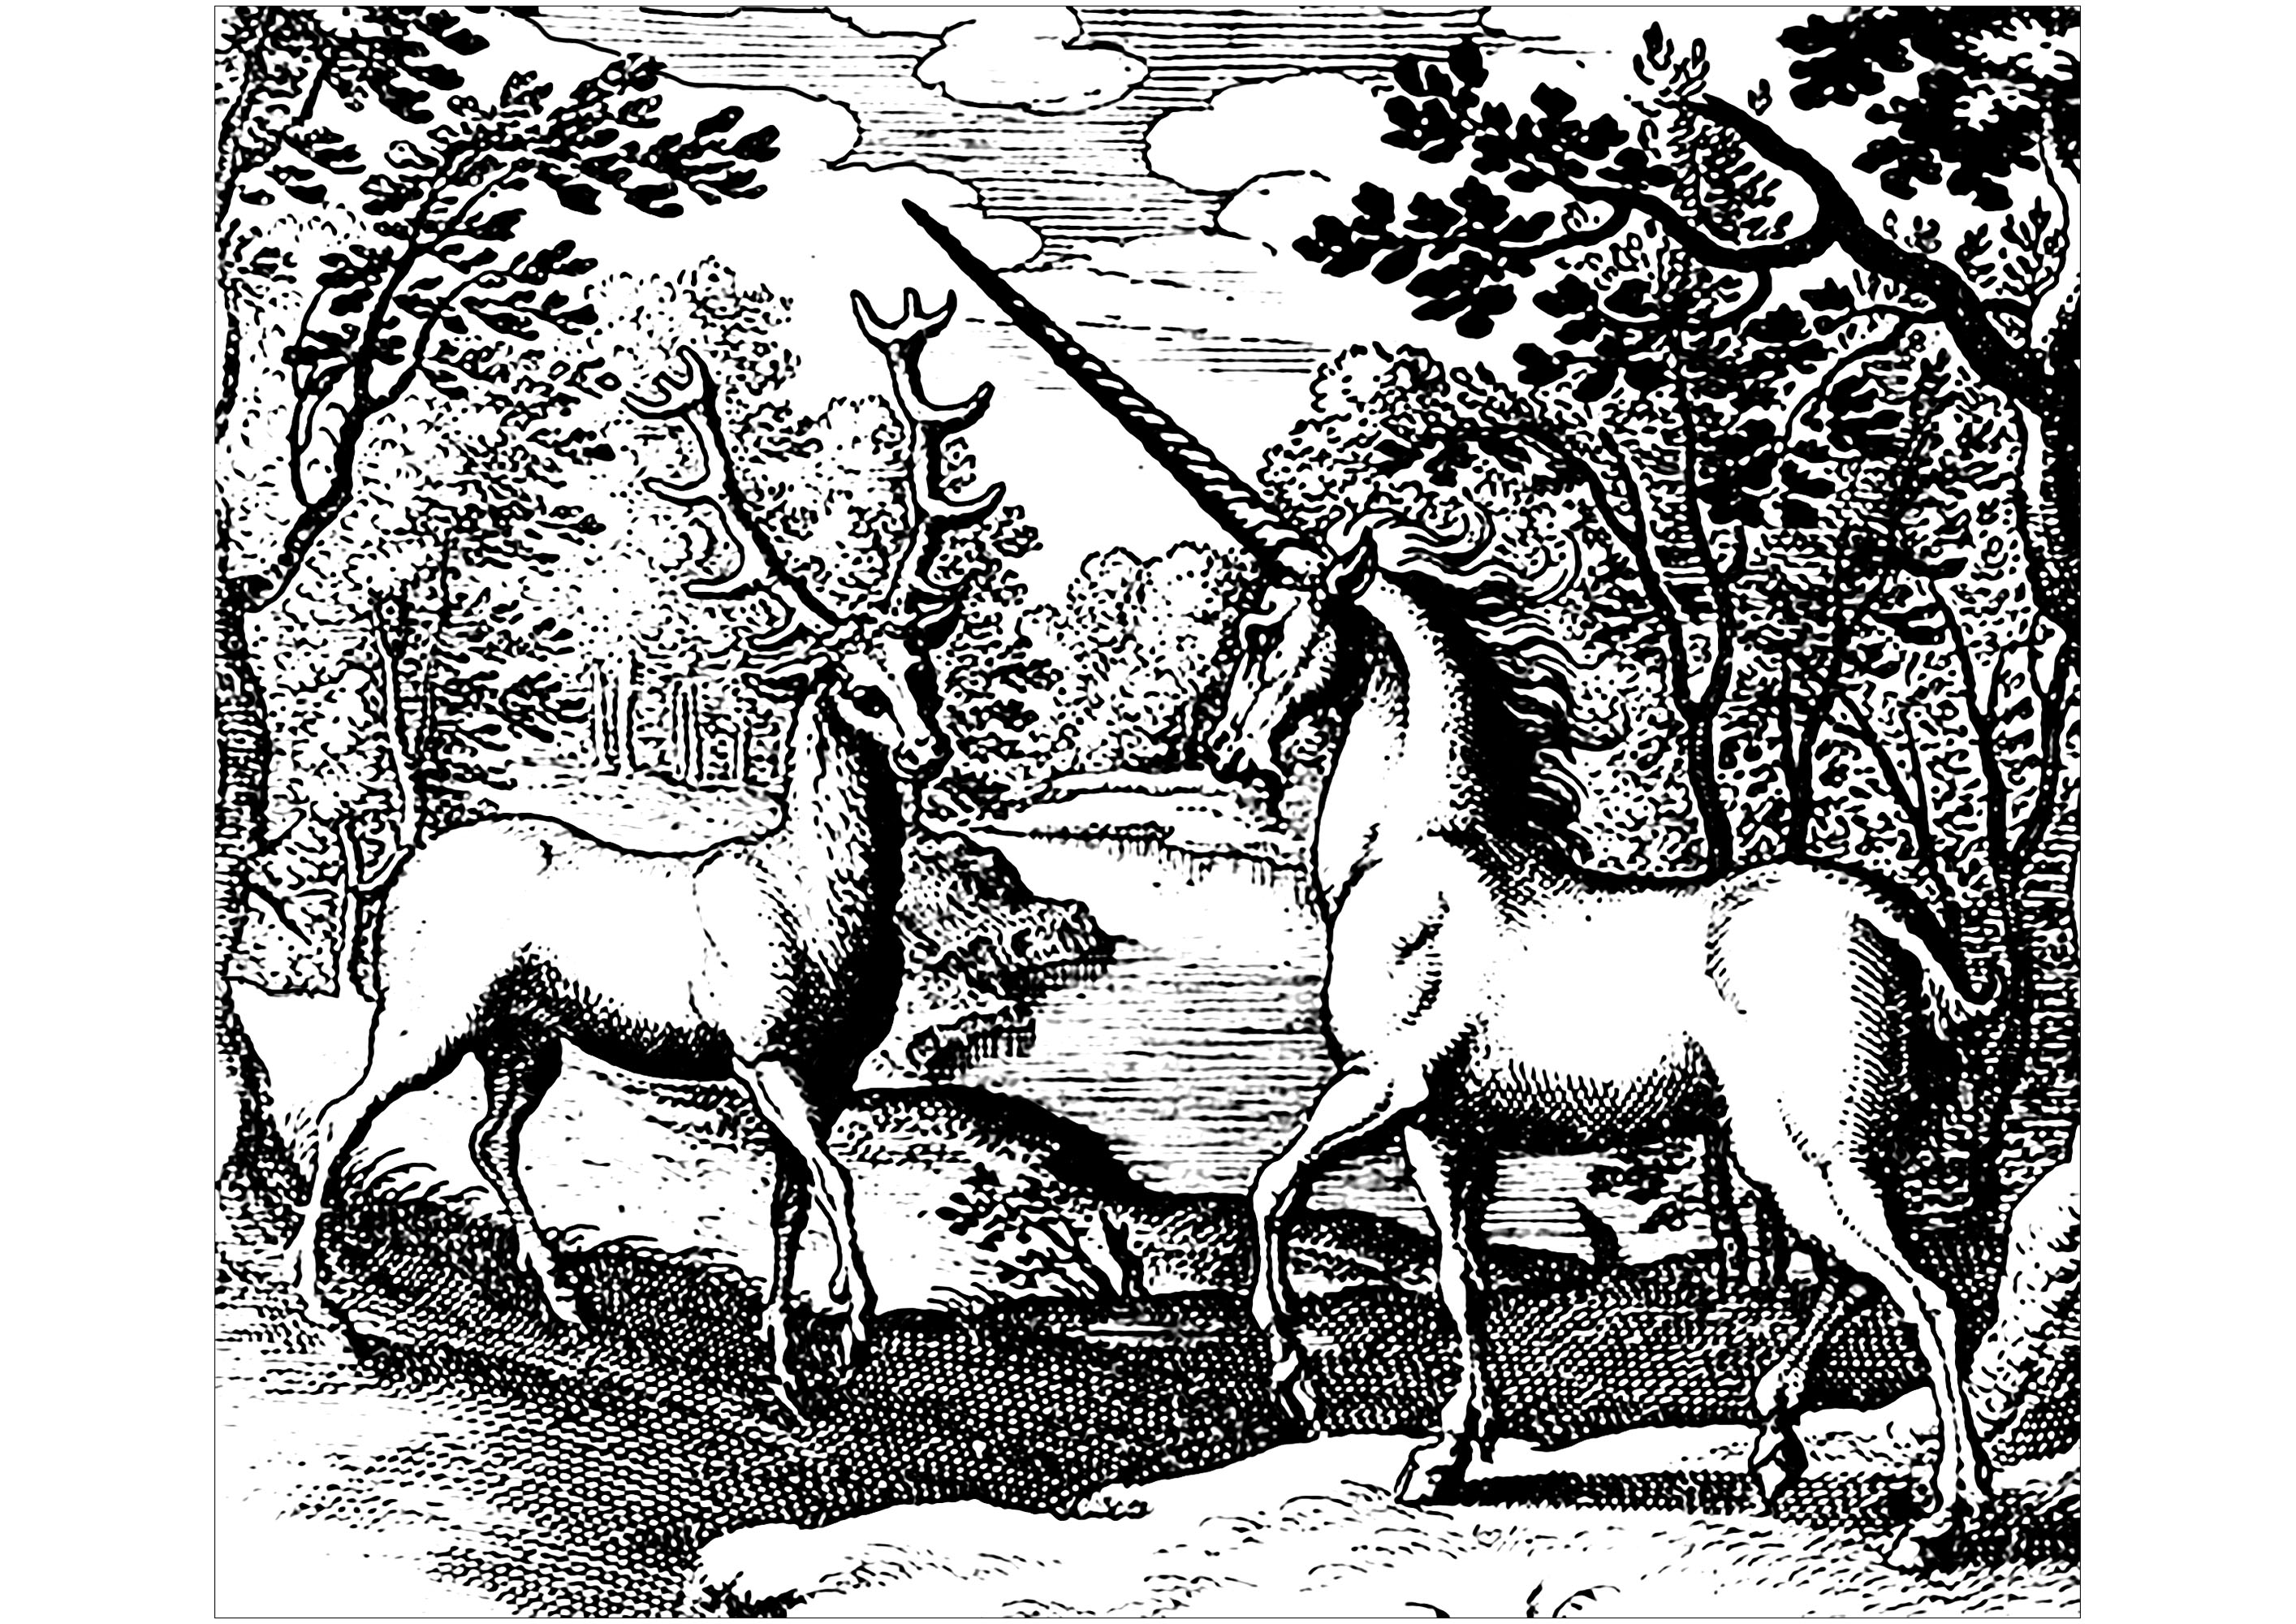 Coloring page created from a woodcut representing an unicorn and a stag  (Hermannum à Sande, around 1677-1678)